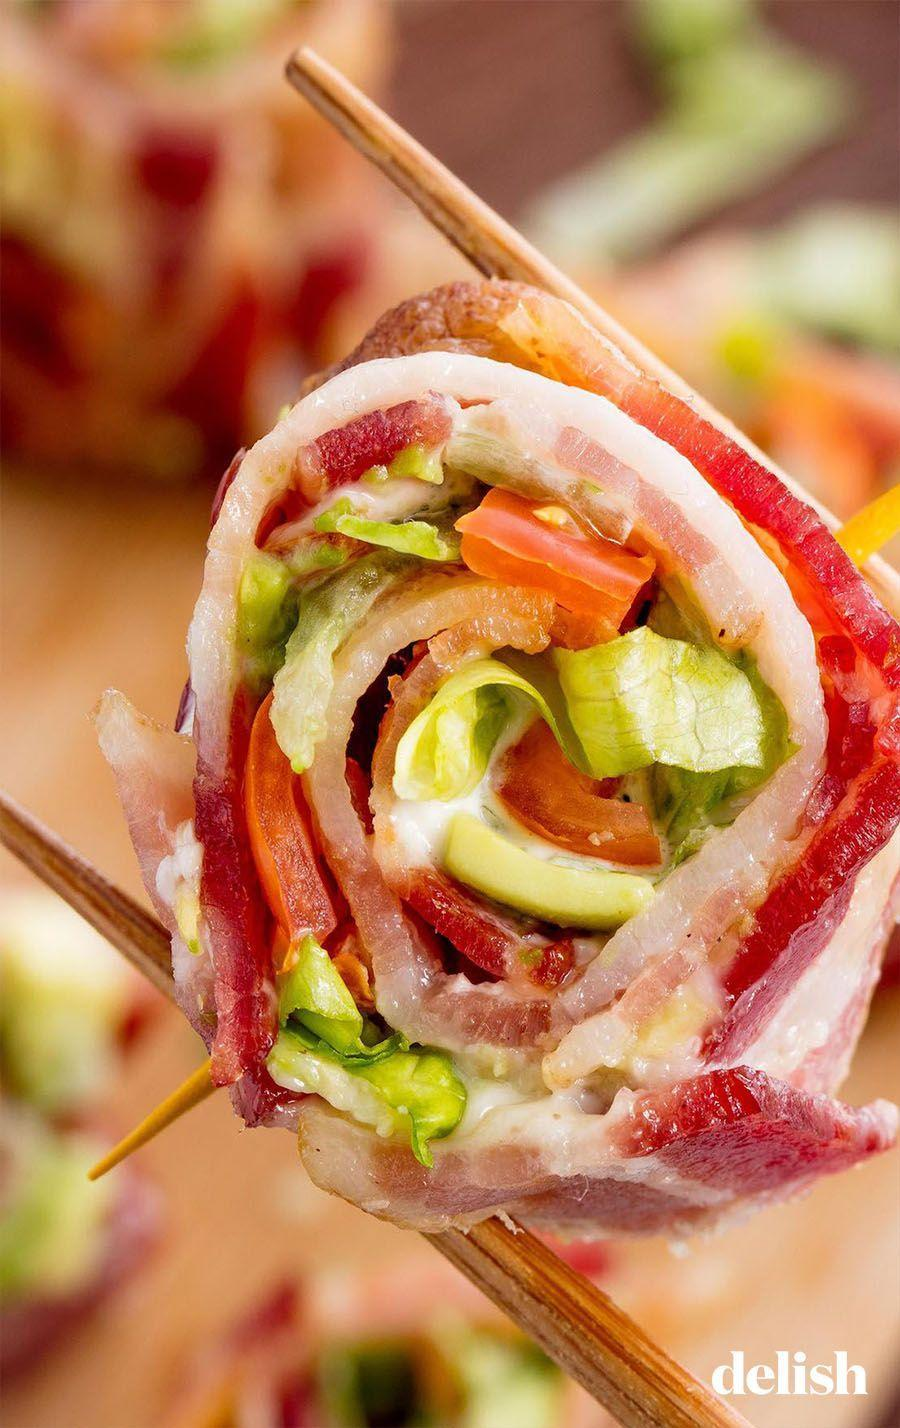 "<p>We consider the BLT to be a major food group. </p><p>Get the recipe from <a href=""https://www.delish.com/cooking/recipe-ideas/recipes/a51582/blt-sushi-recipe/"" rel=""nofollow noopener"" target=""_blank"" data-ylk=""slk:Delish"" class=""link rapid-noclick-resp"">Delish</a>.</p>"